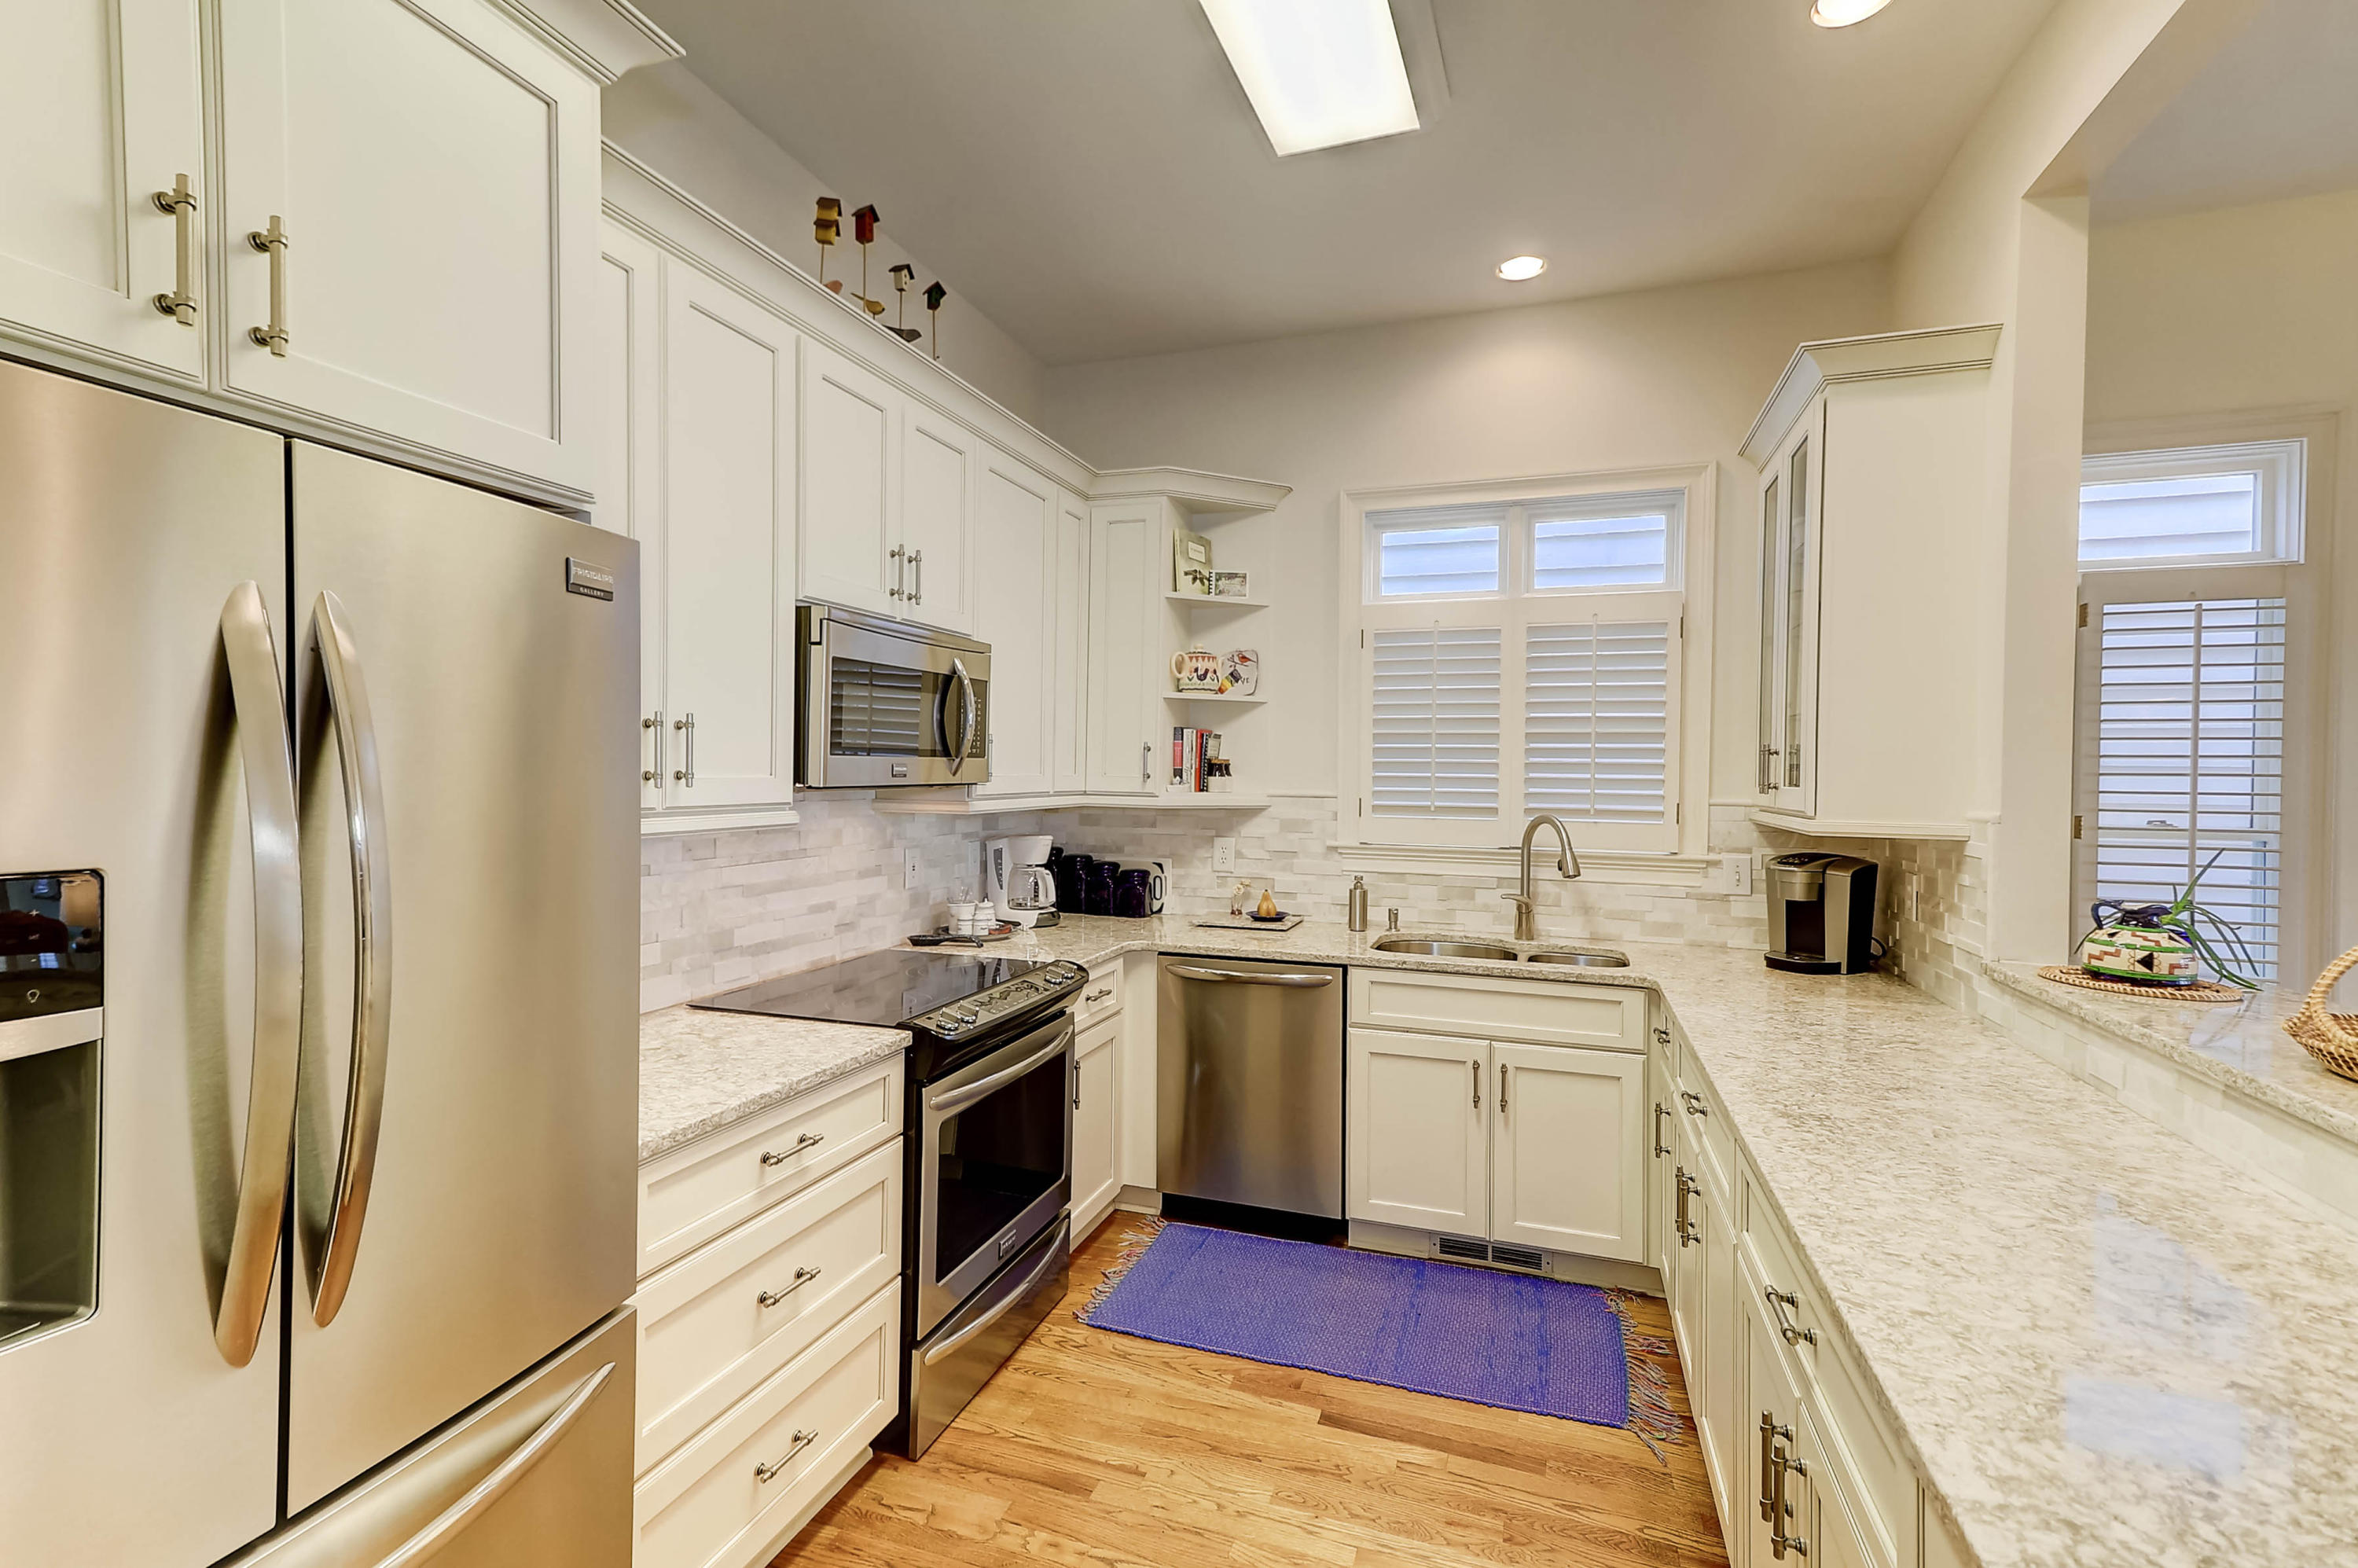 Wild Dunes Homes For Sale - 36 Ocean Point, Isle of Palms, SC - 32